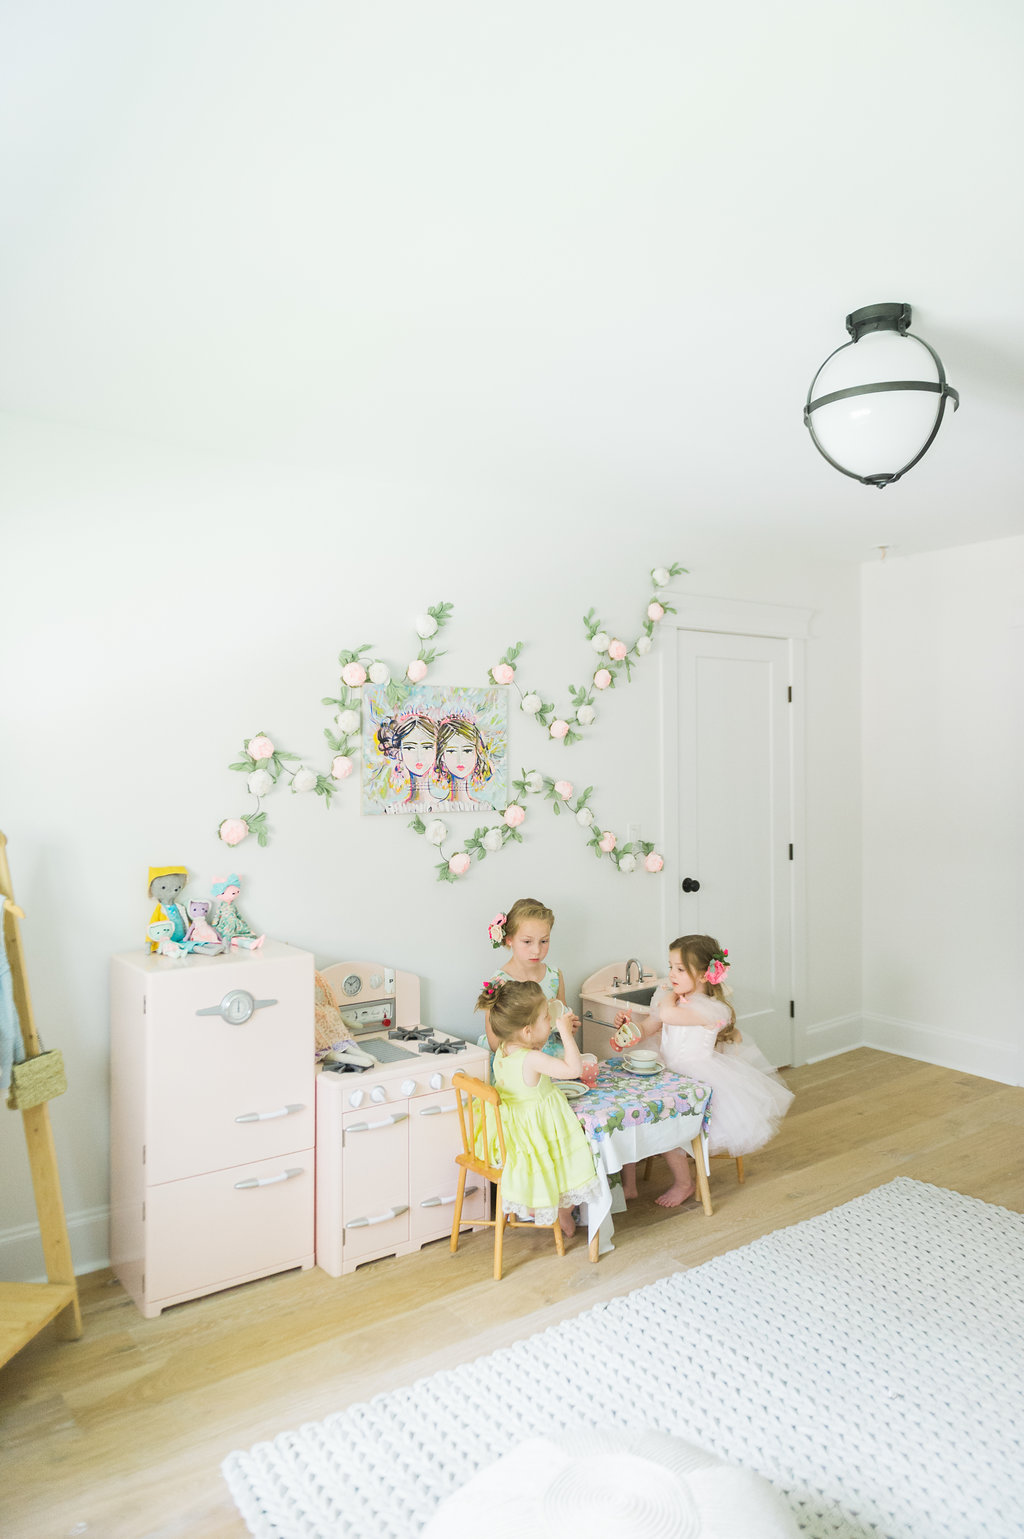 Little Girl Room Designs: Little Girl Room Ideas With Purpose